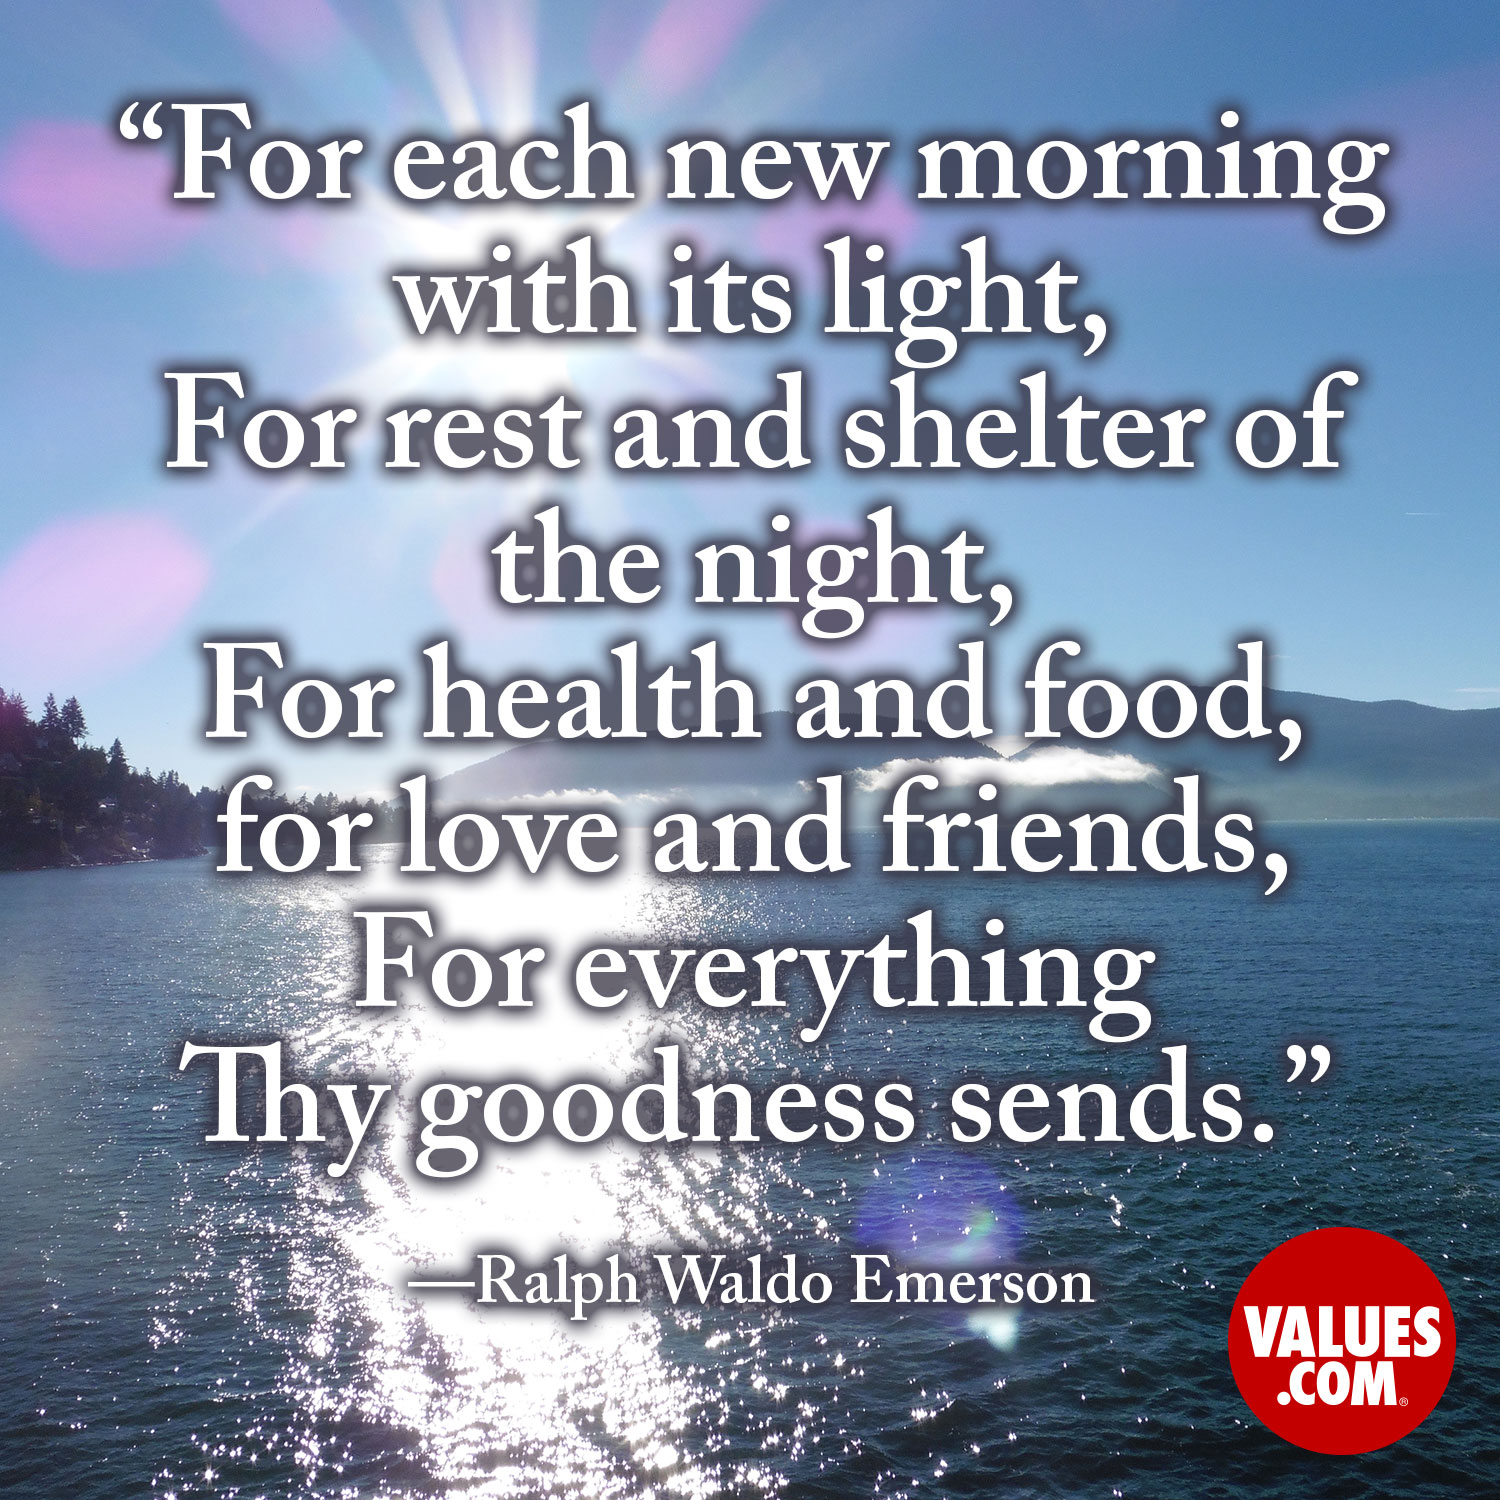 For each new morning with its light, For rest and shelter of the night, For health and food, for love and friends, For everything Thy goodness sends.